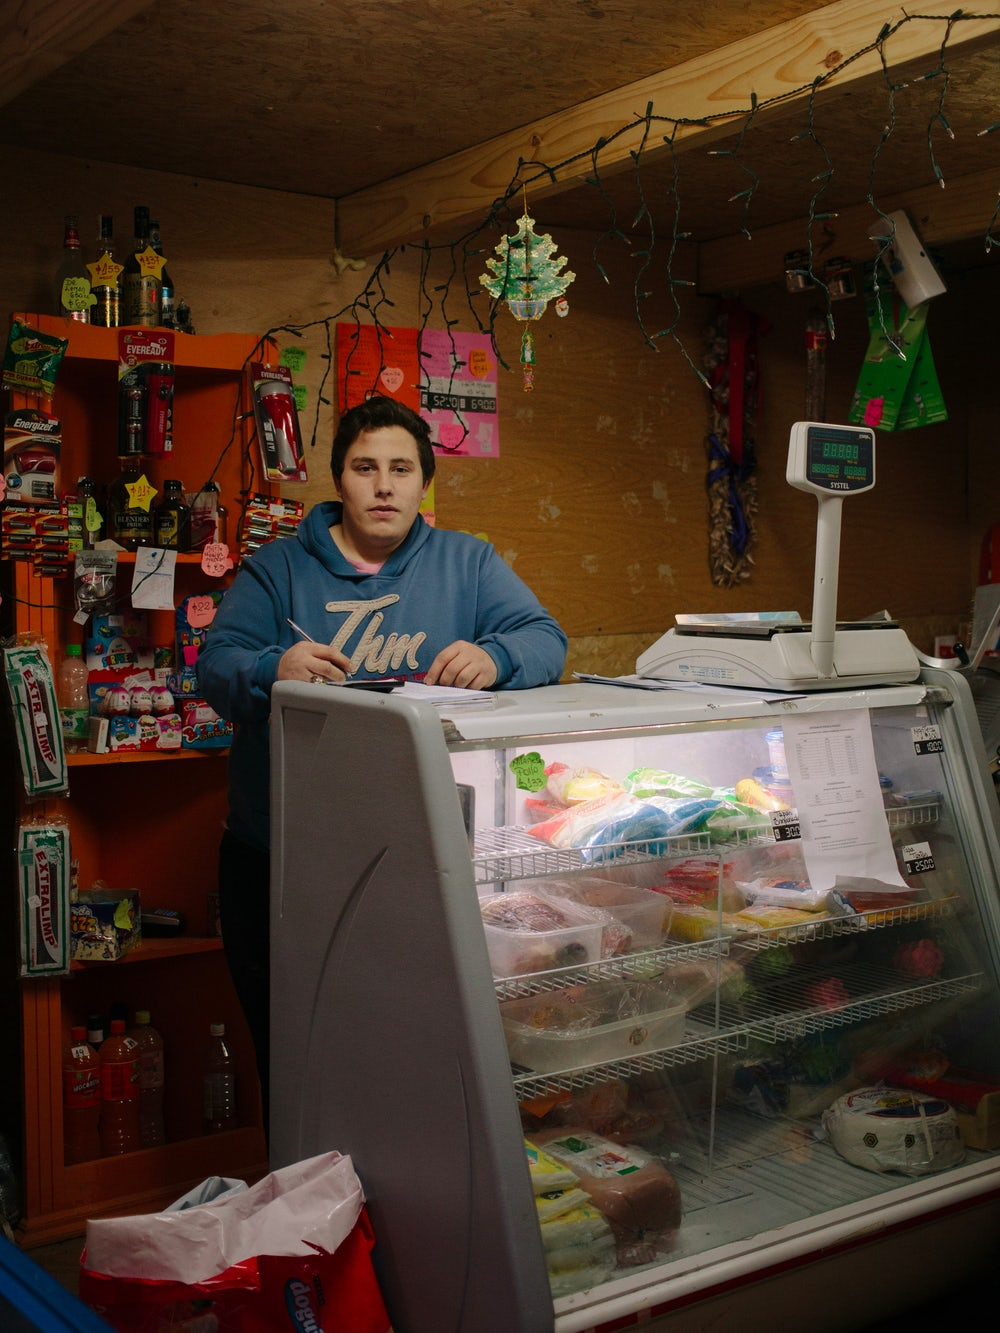 Augustine works as a clerk in one of the few shops inside the occupied Dos Banderas neighborhood, in the middle of the woods.